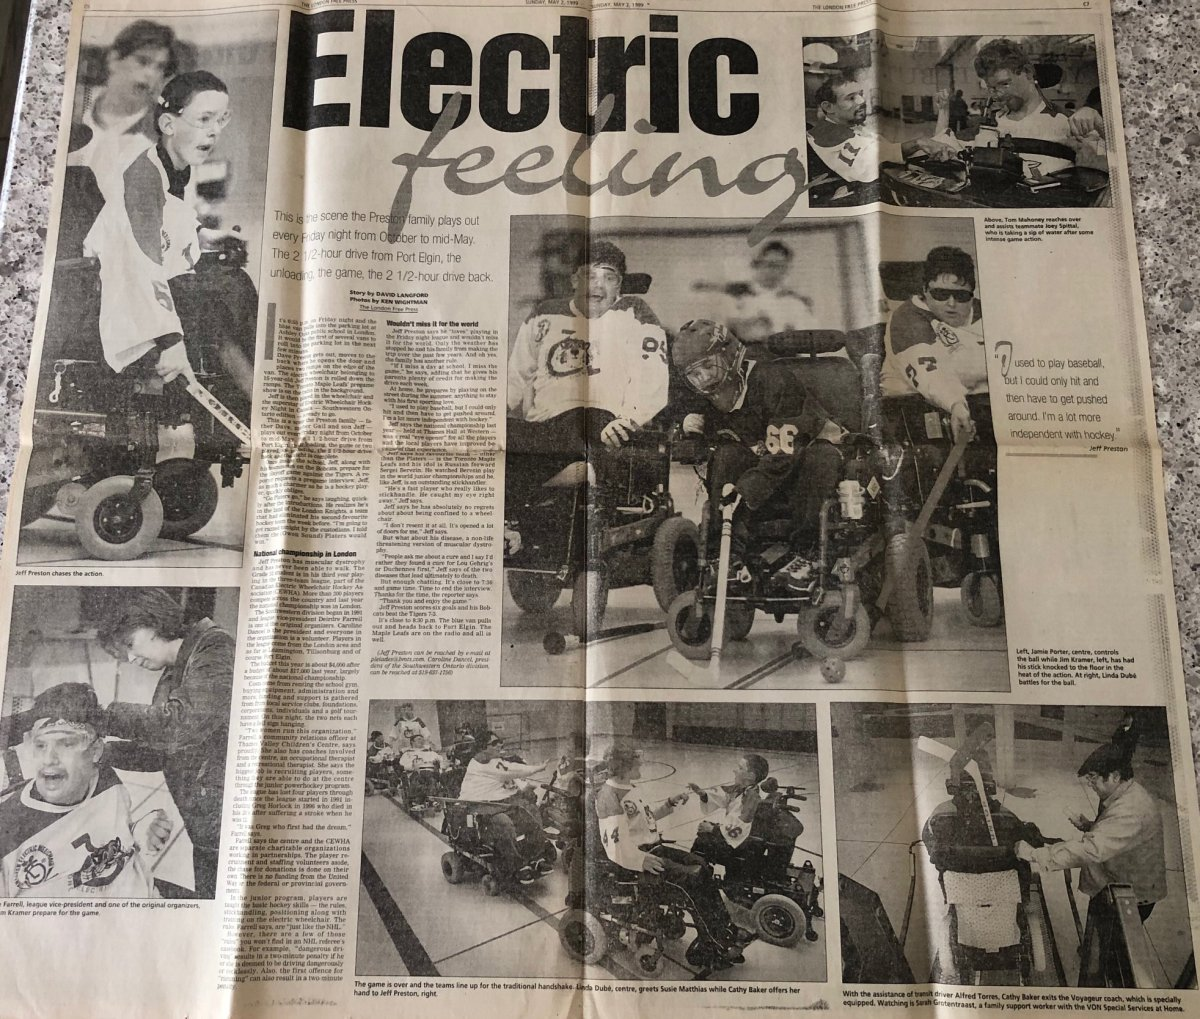 Image of LFP article from 20 years ago